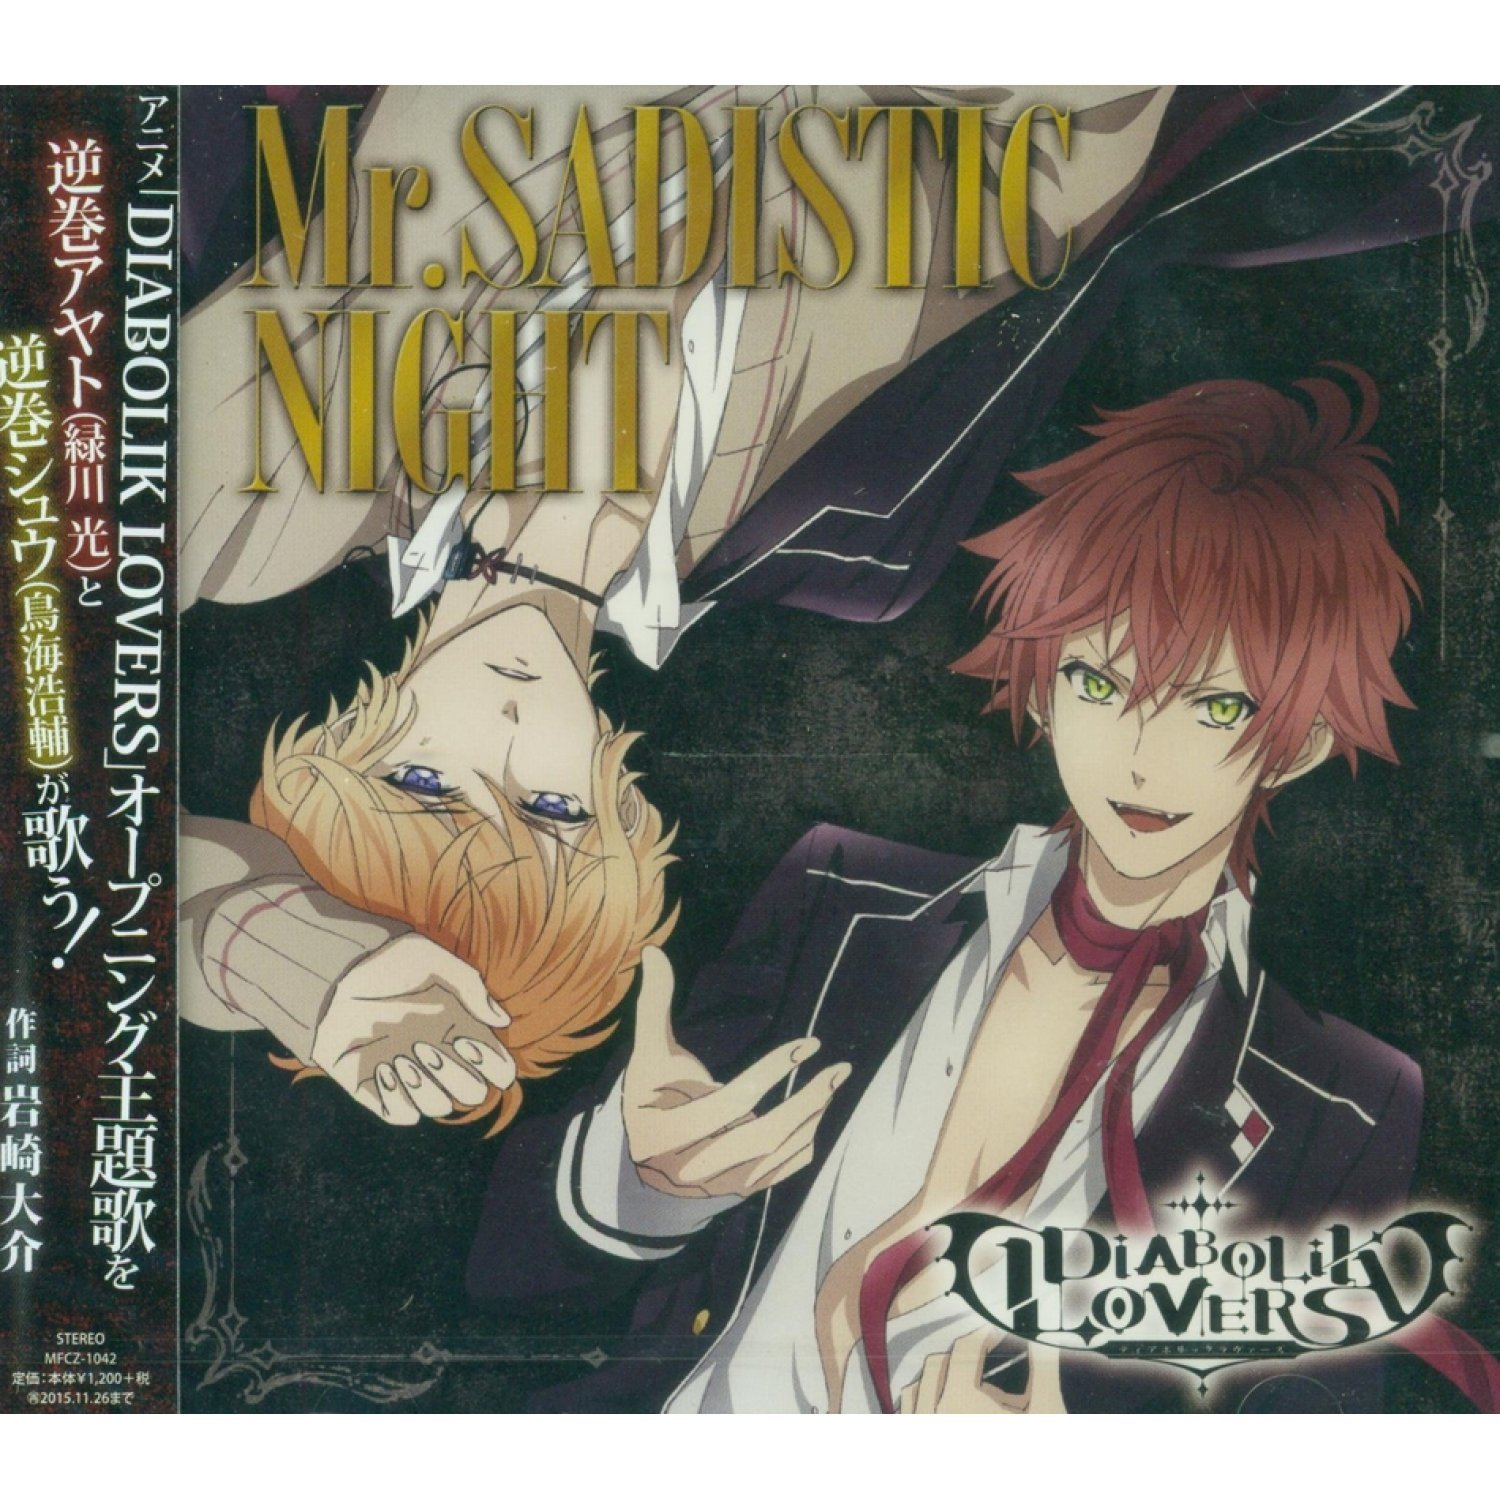 Mr Sadistic Night Diabolik Lovers Intro Theme Song Ayato Sakamaki Shu